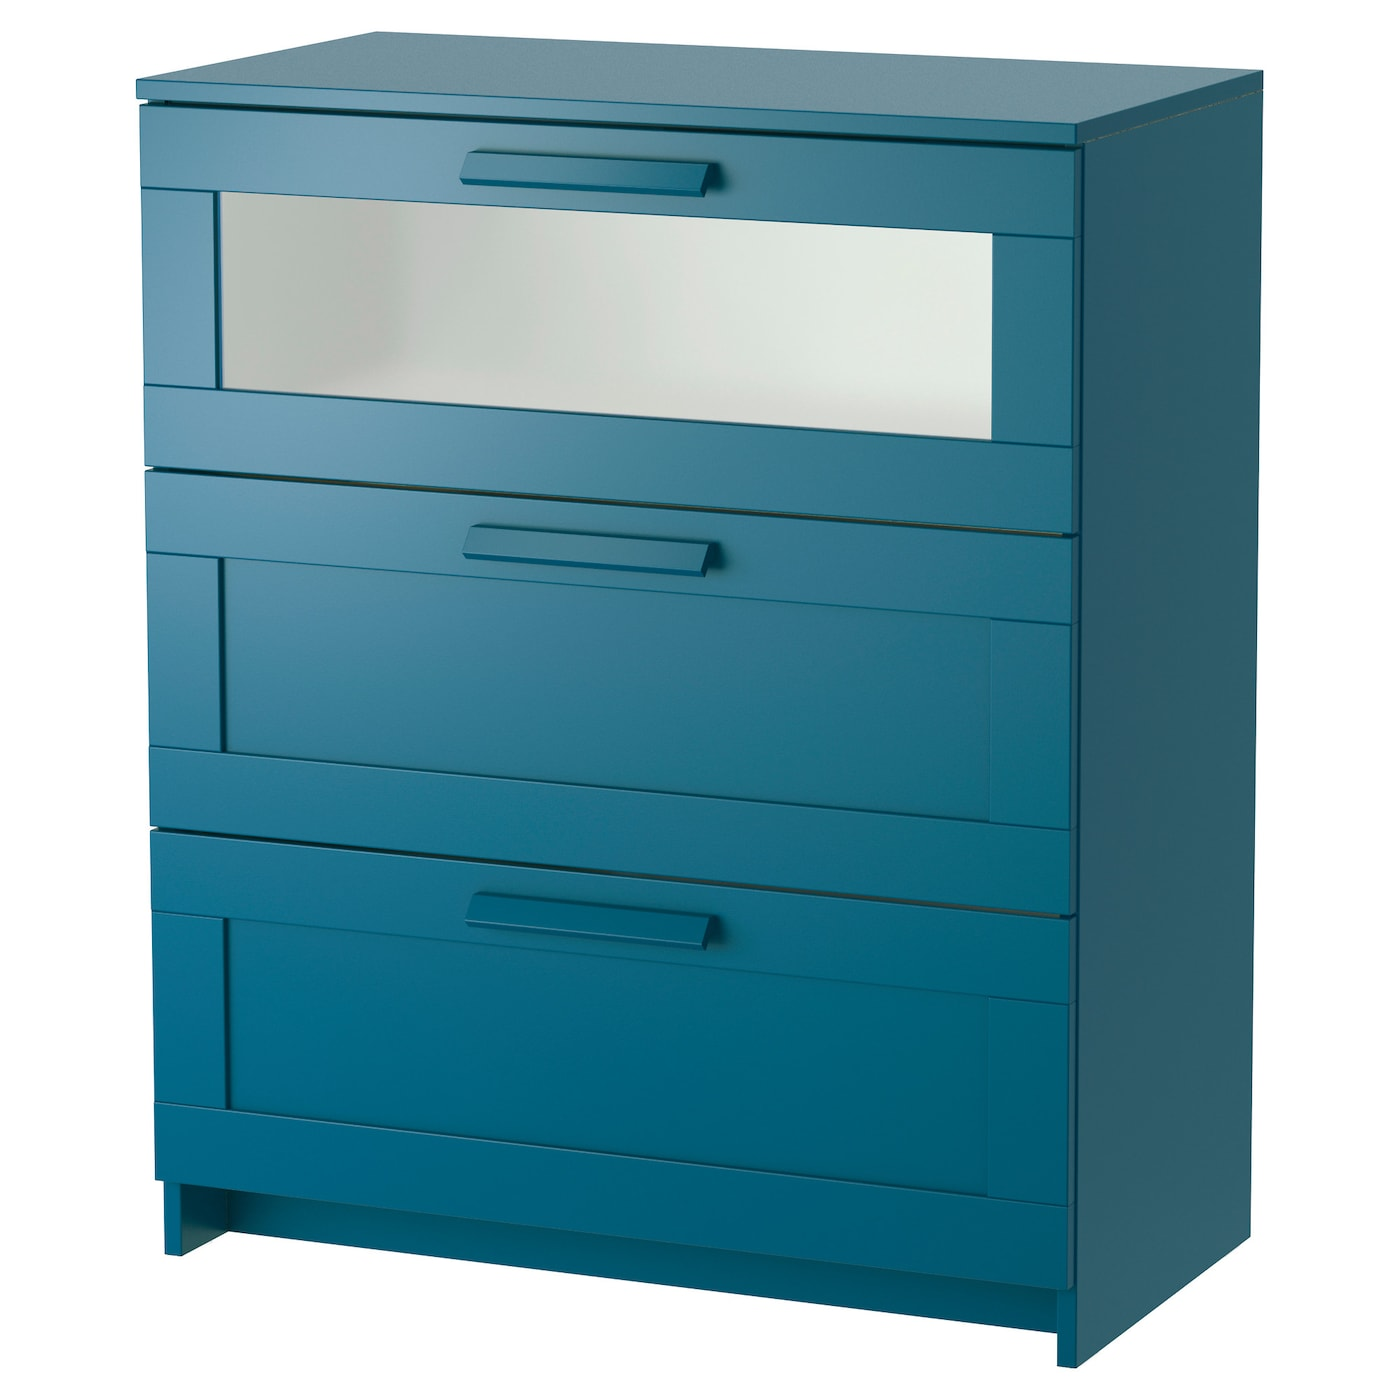 Chest Of Drawers With Frosted Glass